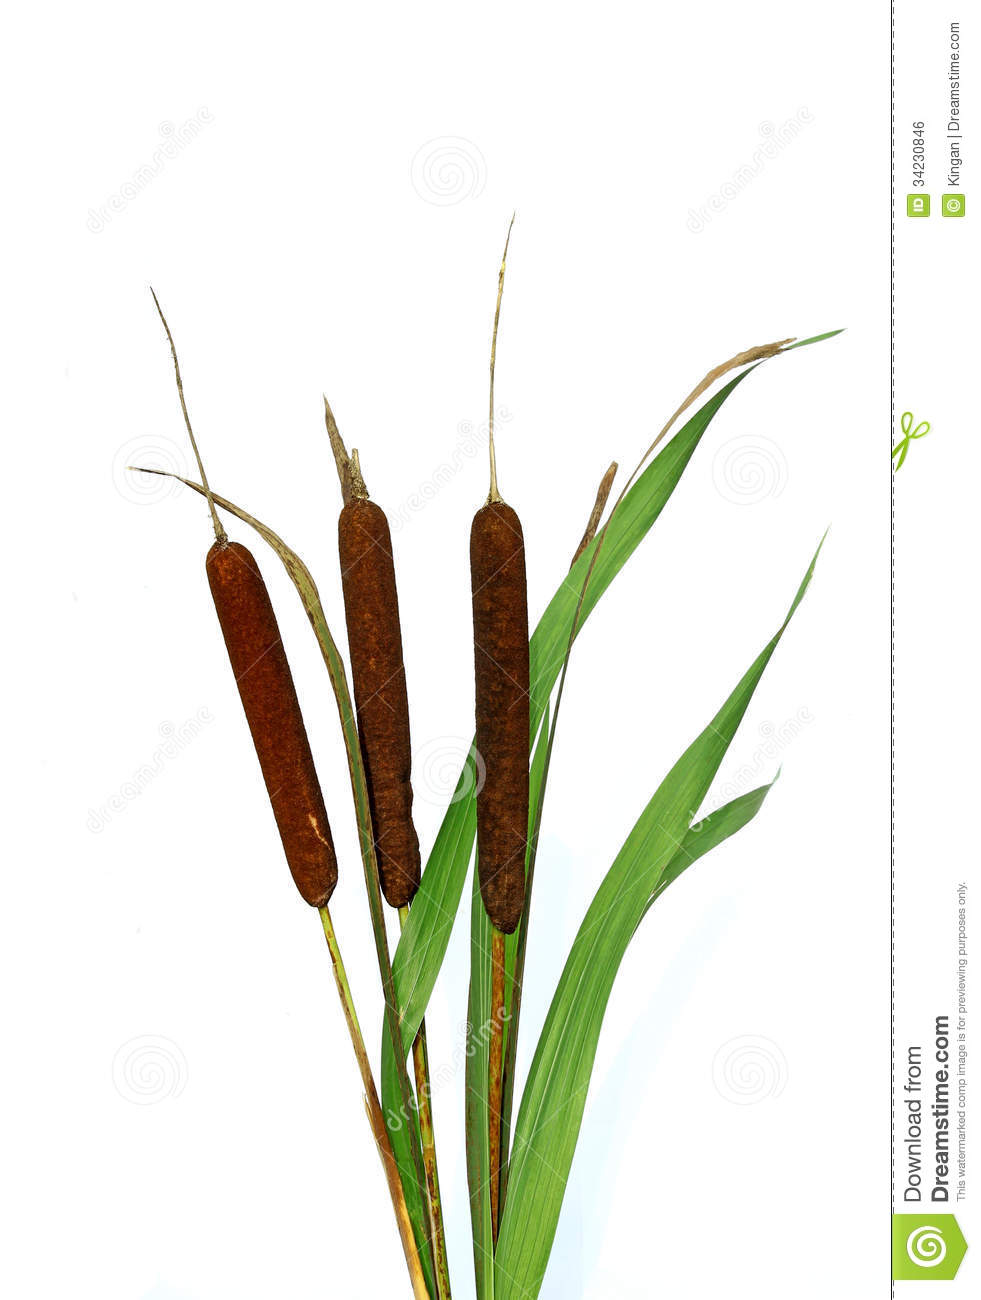 Plant Reeds Isolated Royalty Free Stock Image - Image: 34230846